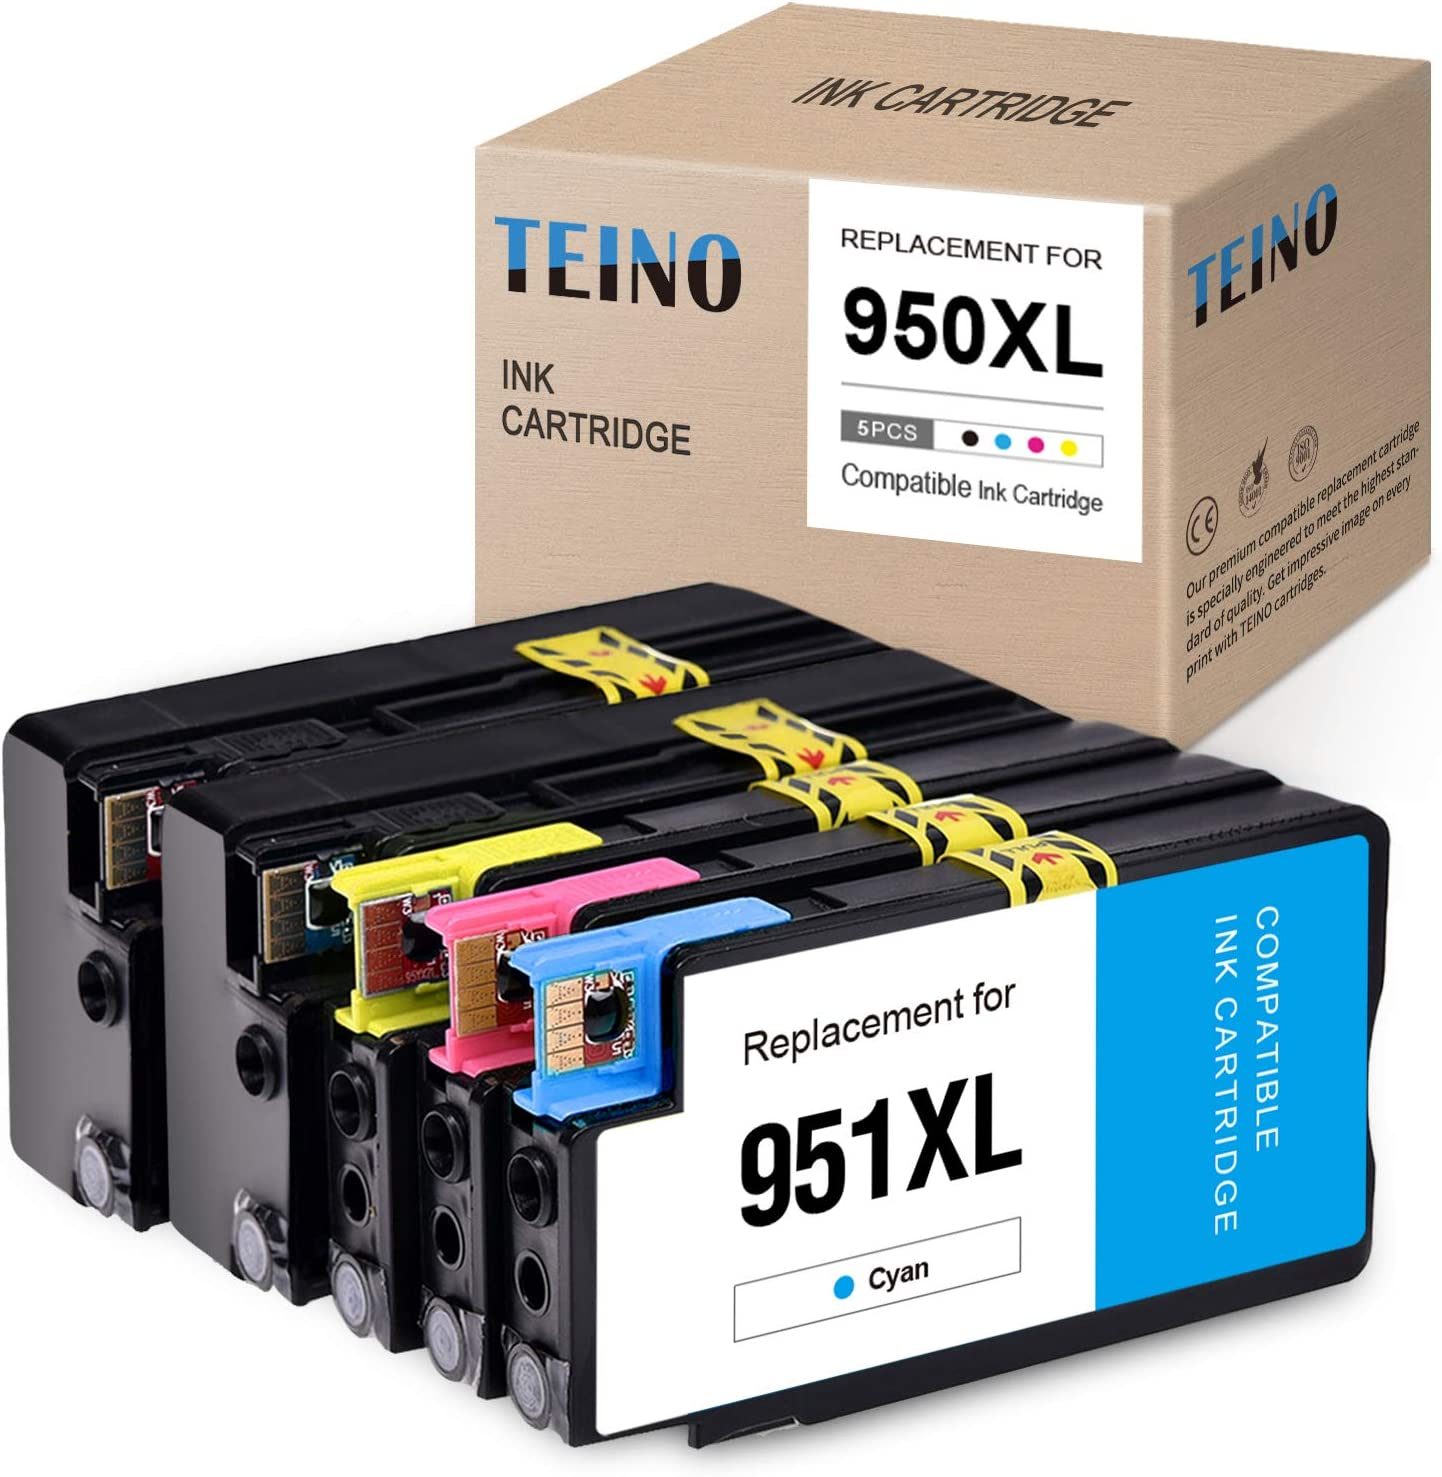 TEINO Compatible Ink Cartridge Replacement for HP 950XL 950 XL 951XL 951 XL use with HP OfficeJet Pro 8600 8610 8620 8625 8630 8100 8615 276DW (2 Black, 1 Cyan, 1 Magenta, 1 Yellow, 5-Pack)